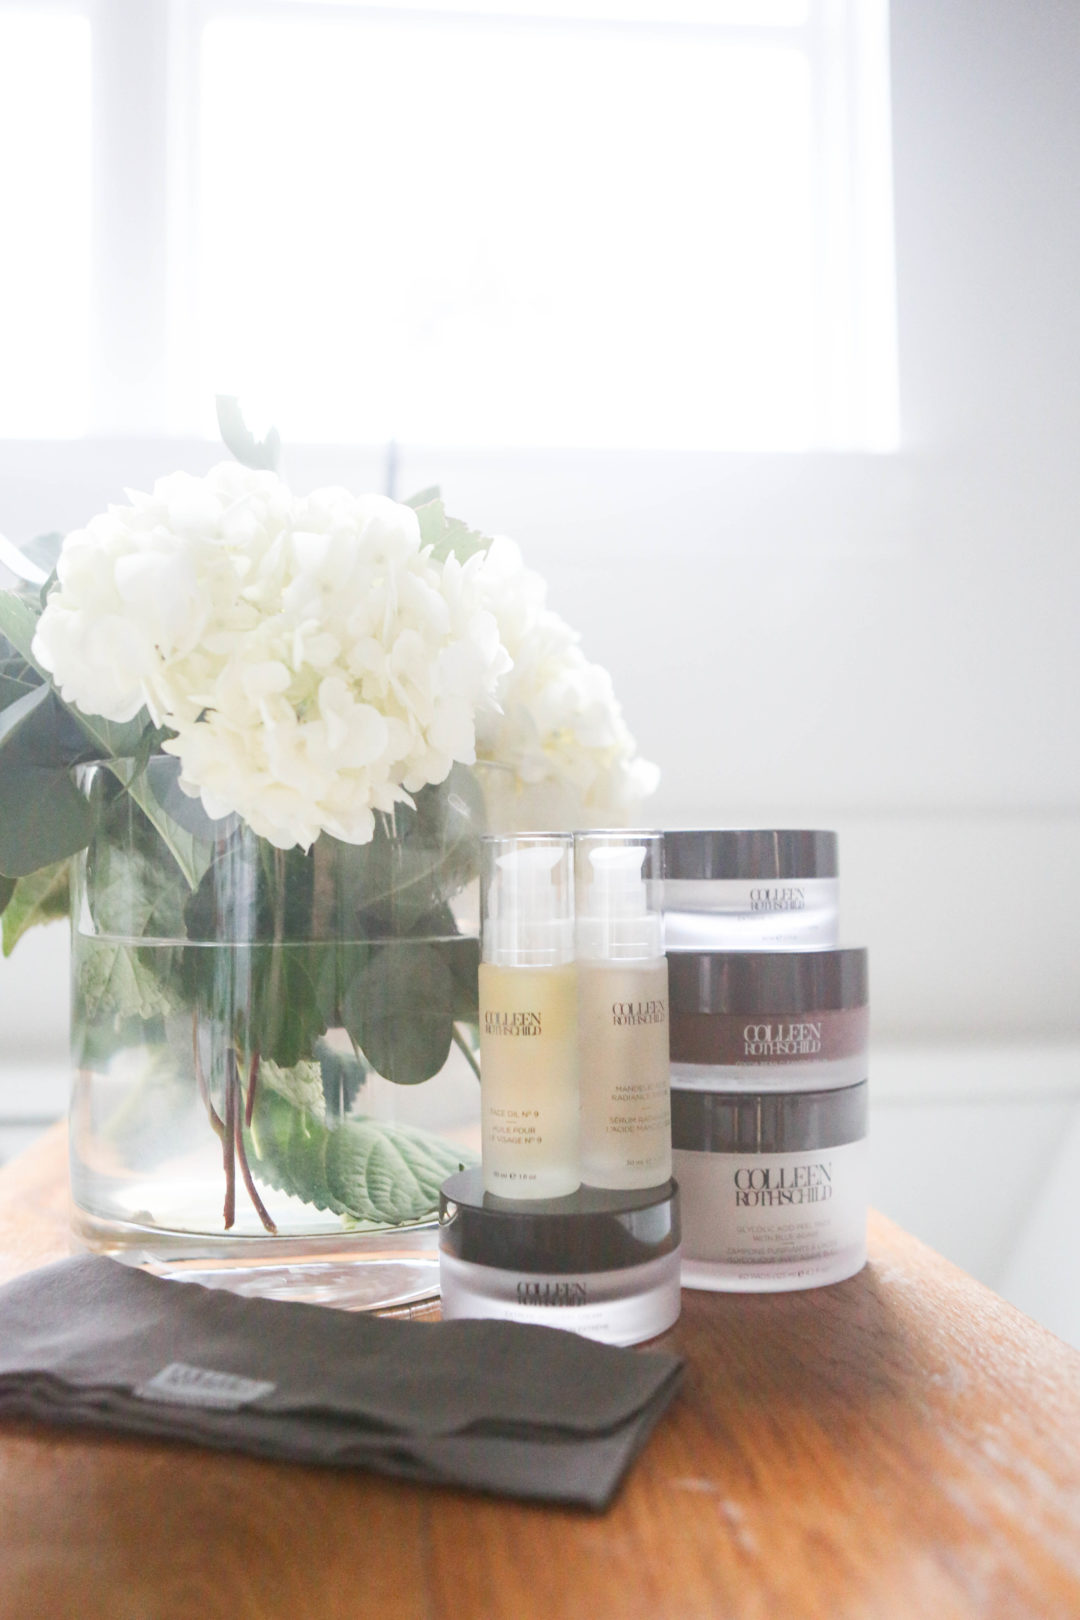 How to Start and Anti Aging Skin Care Routine With Colleen Rothschild